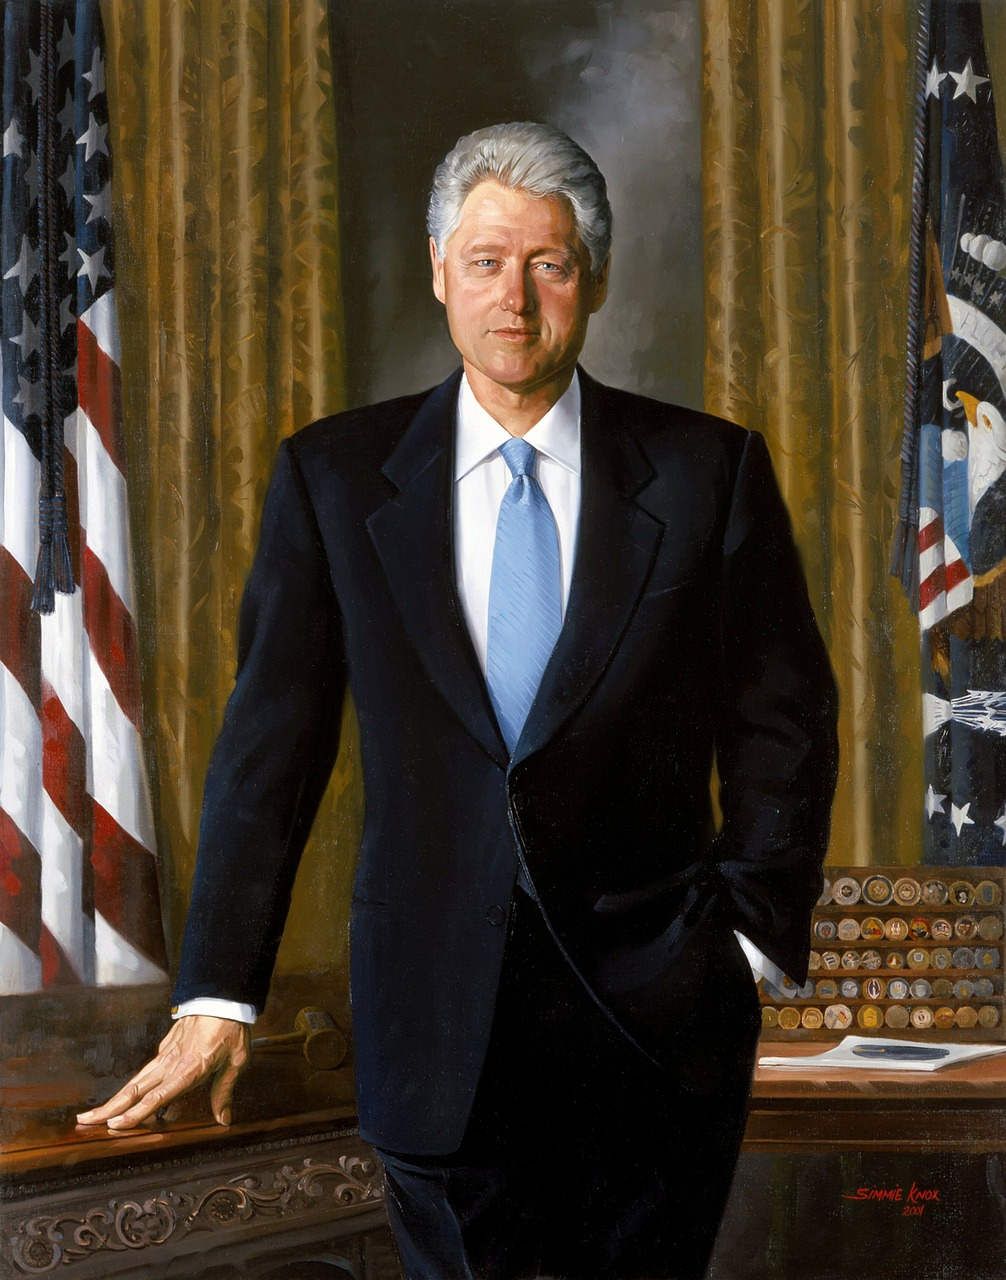 bill clinton president usa free photo